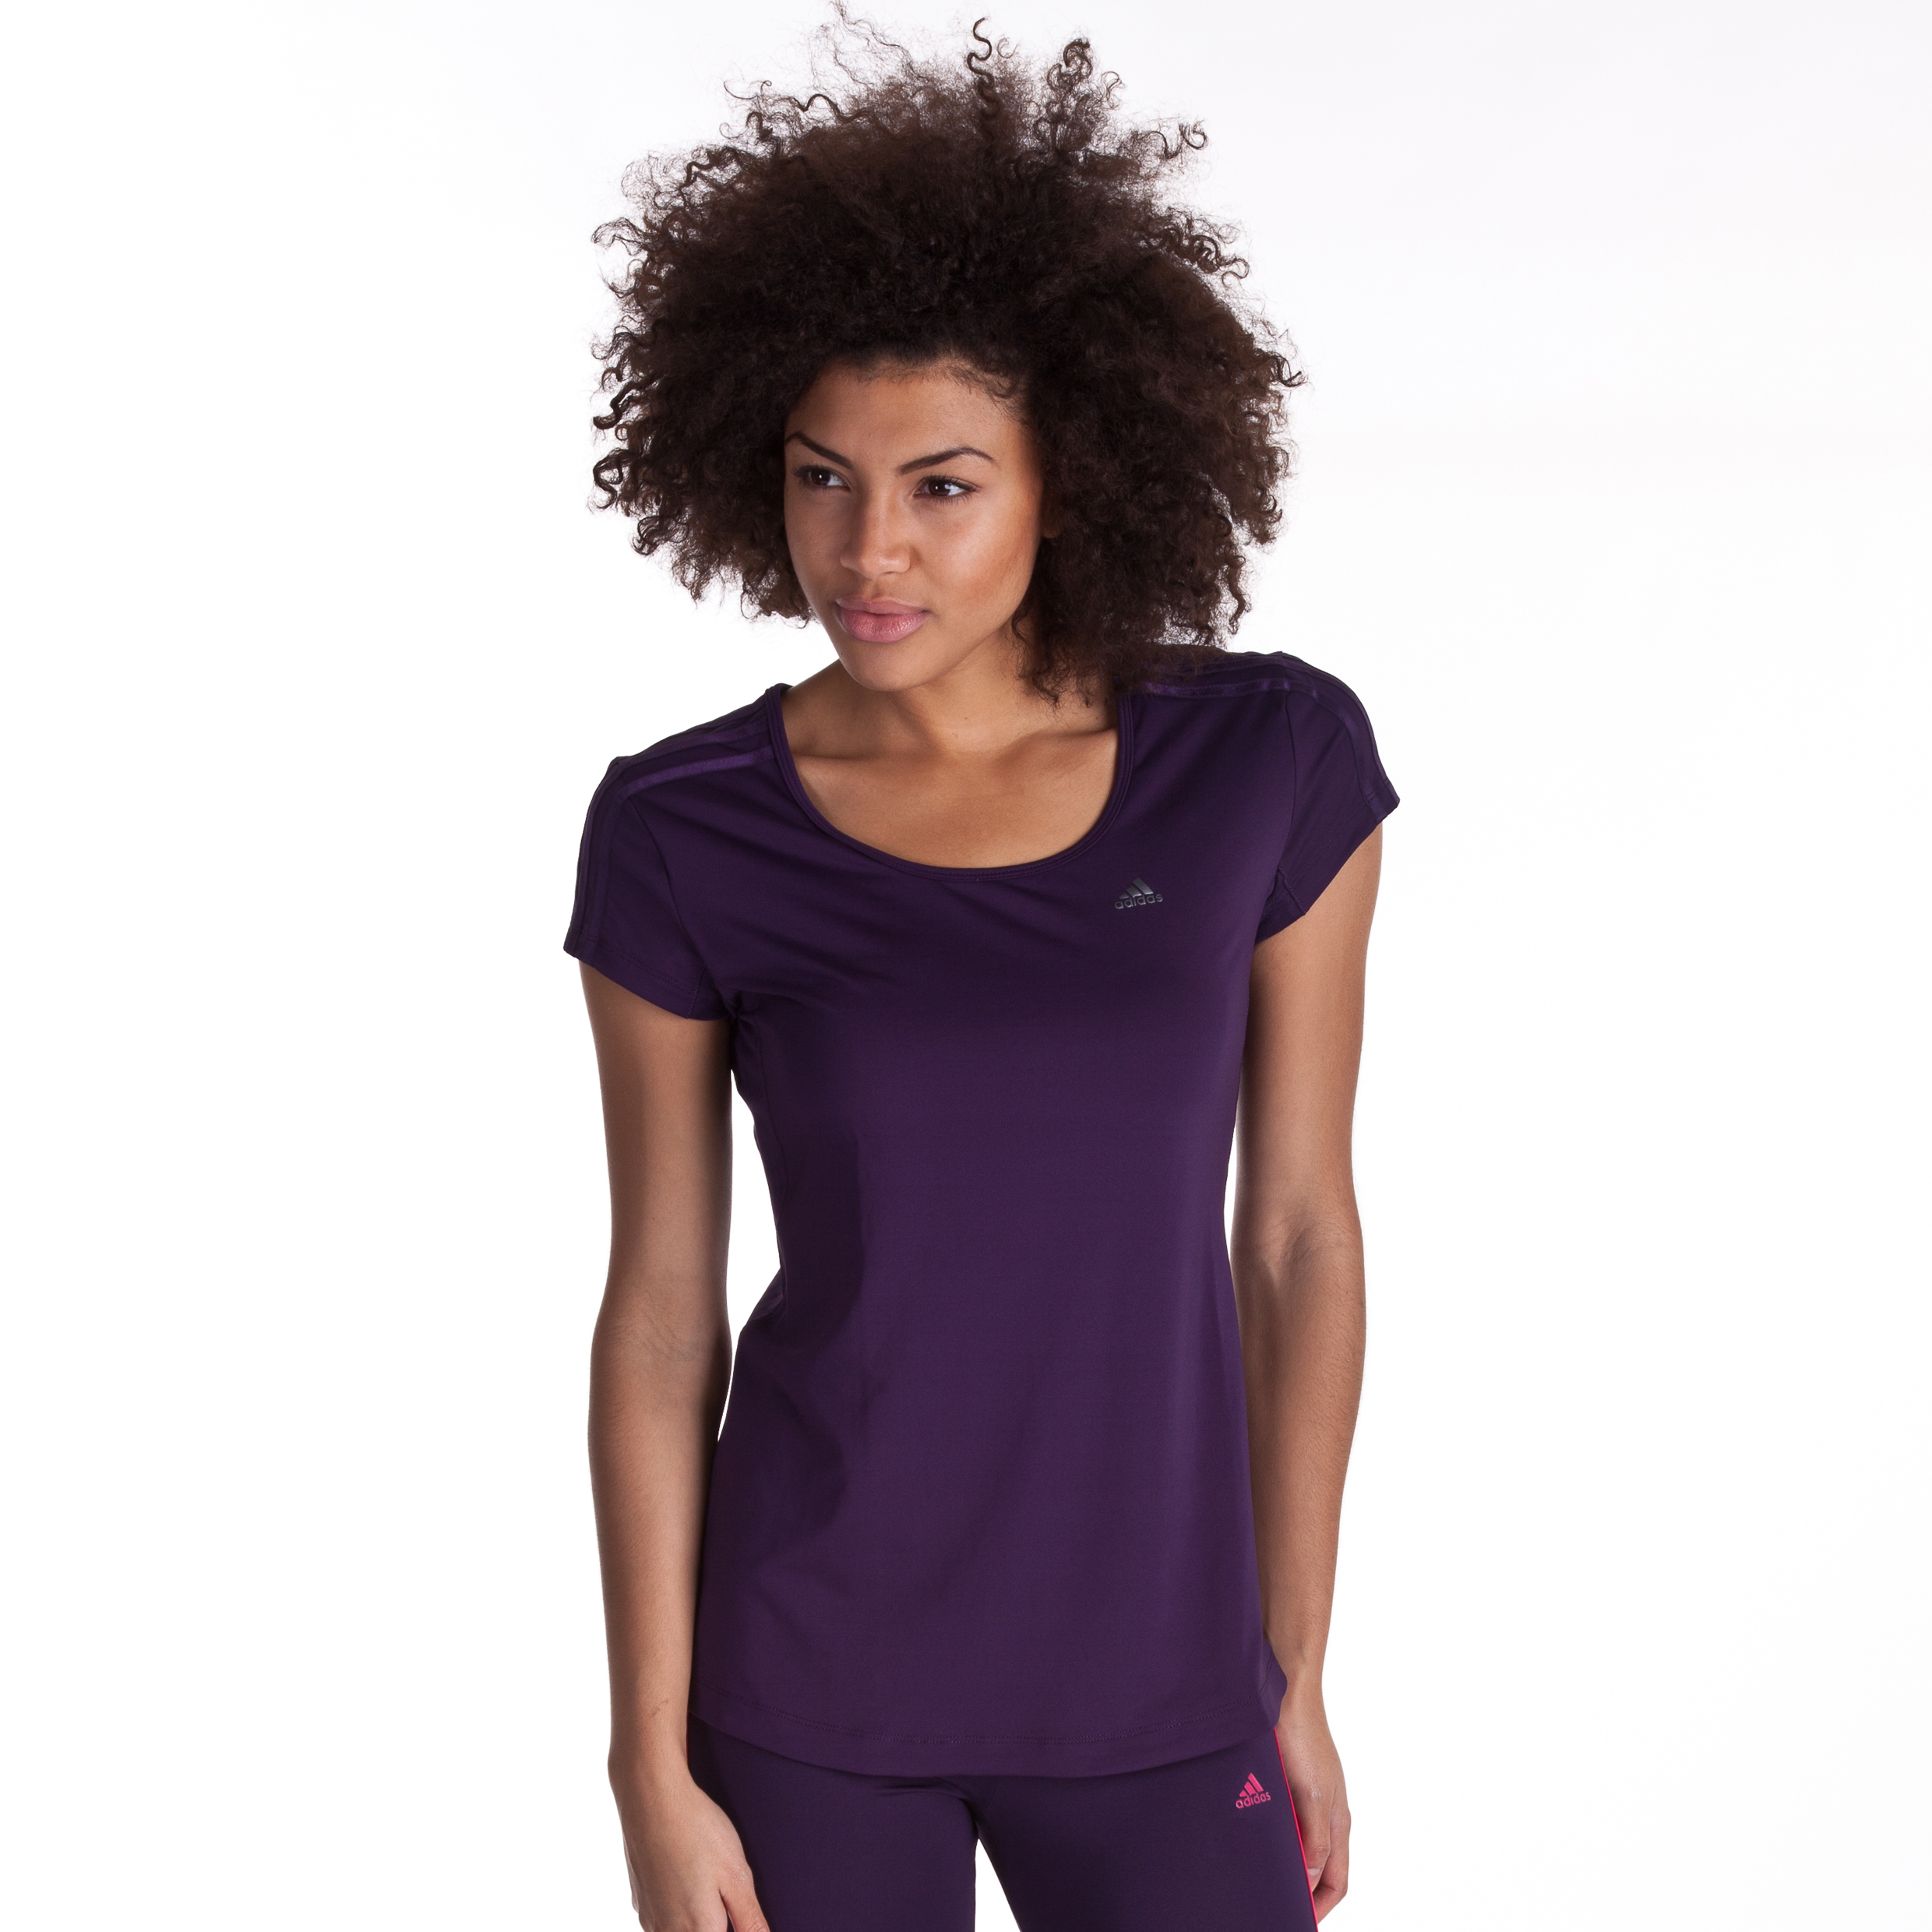 Adidas Climacool Training T-Shirt - Dark Violet - Womens